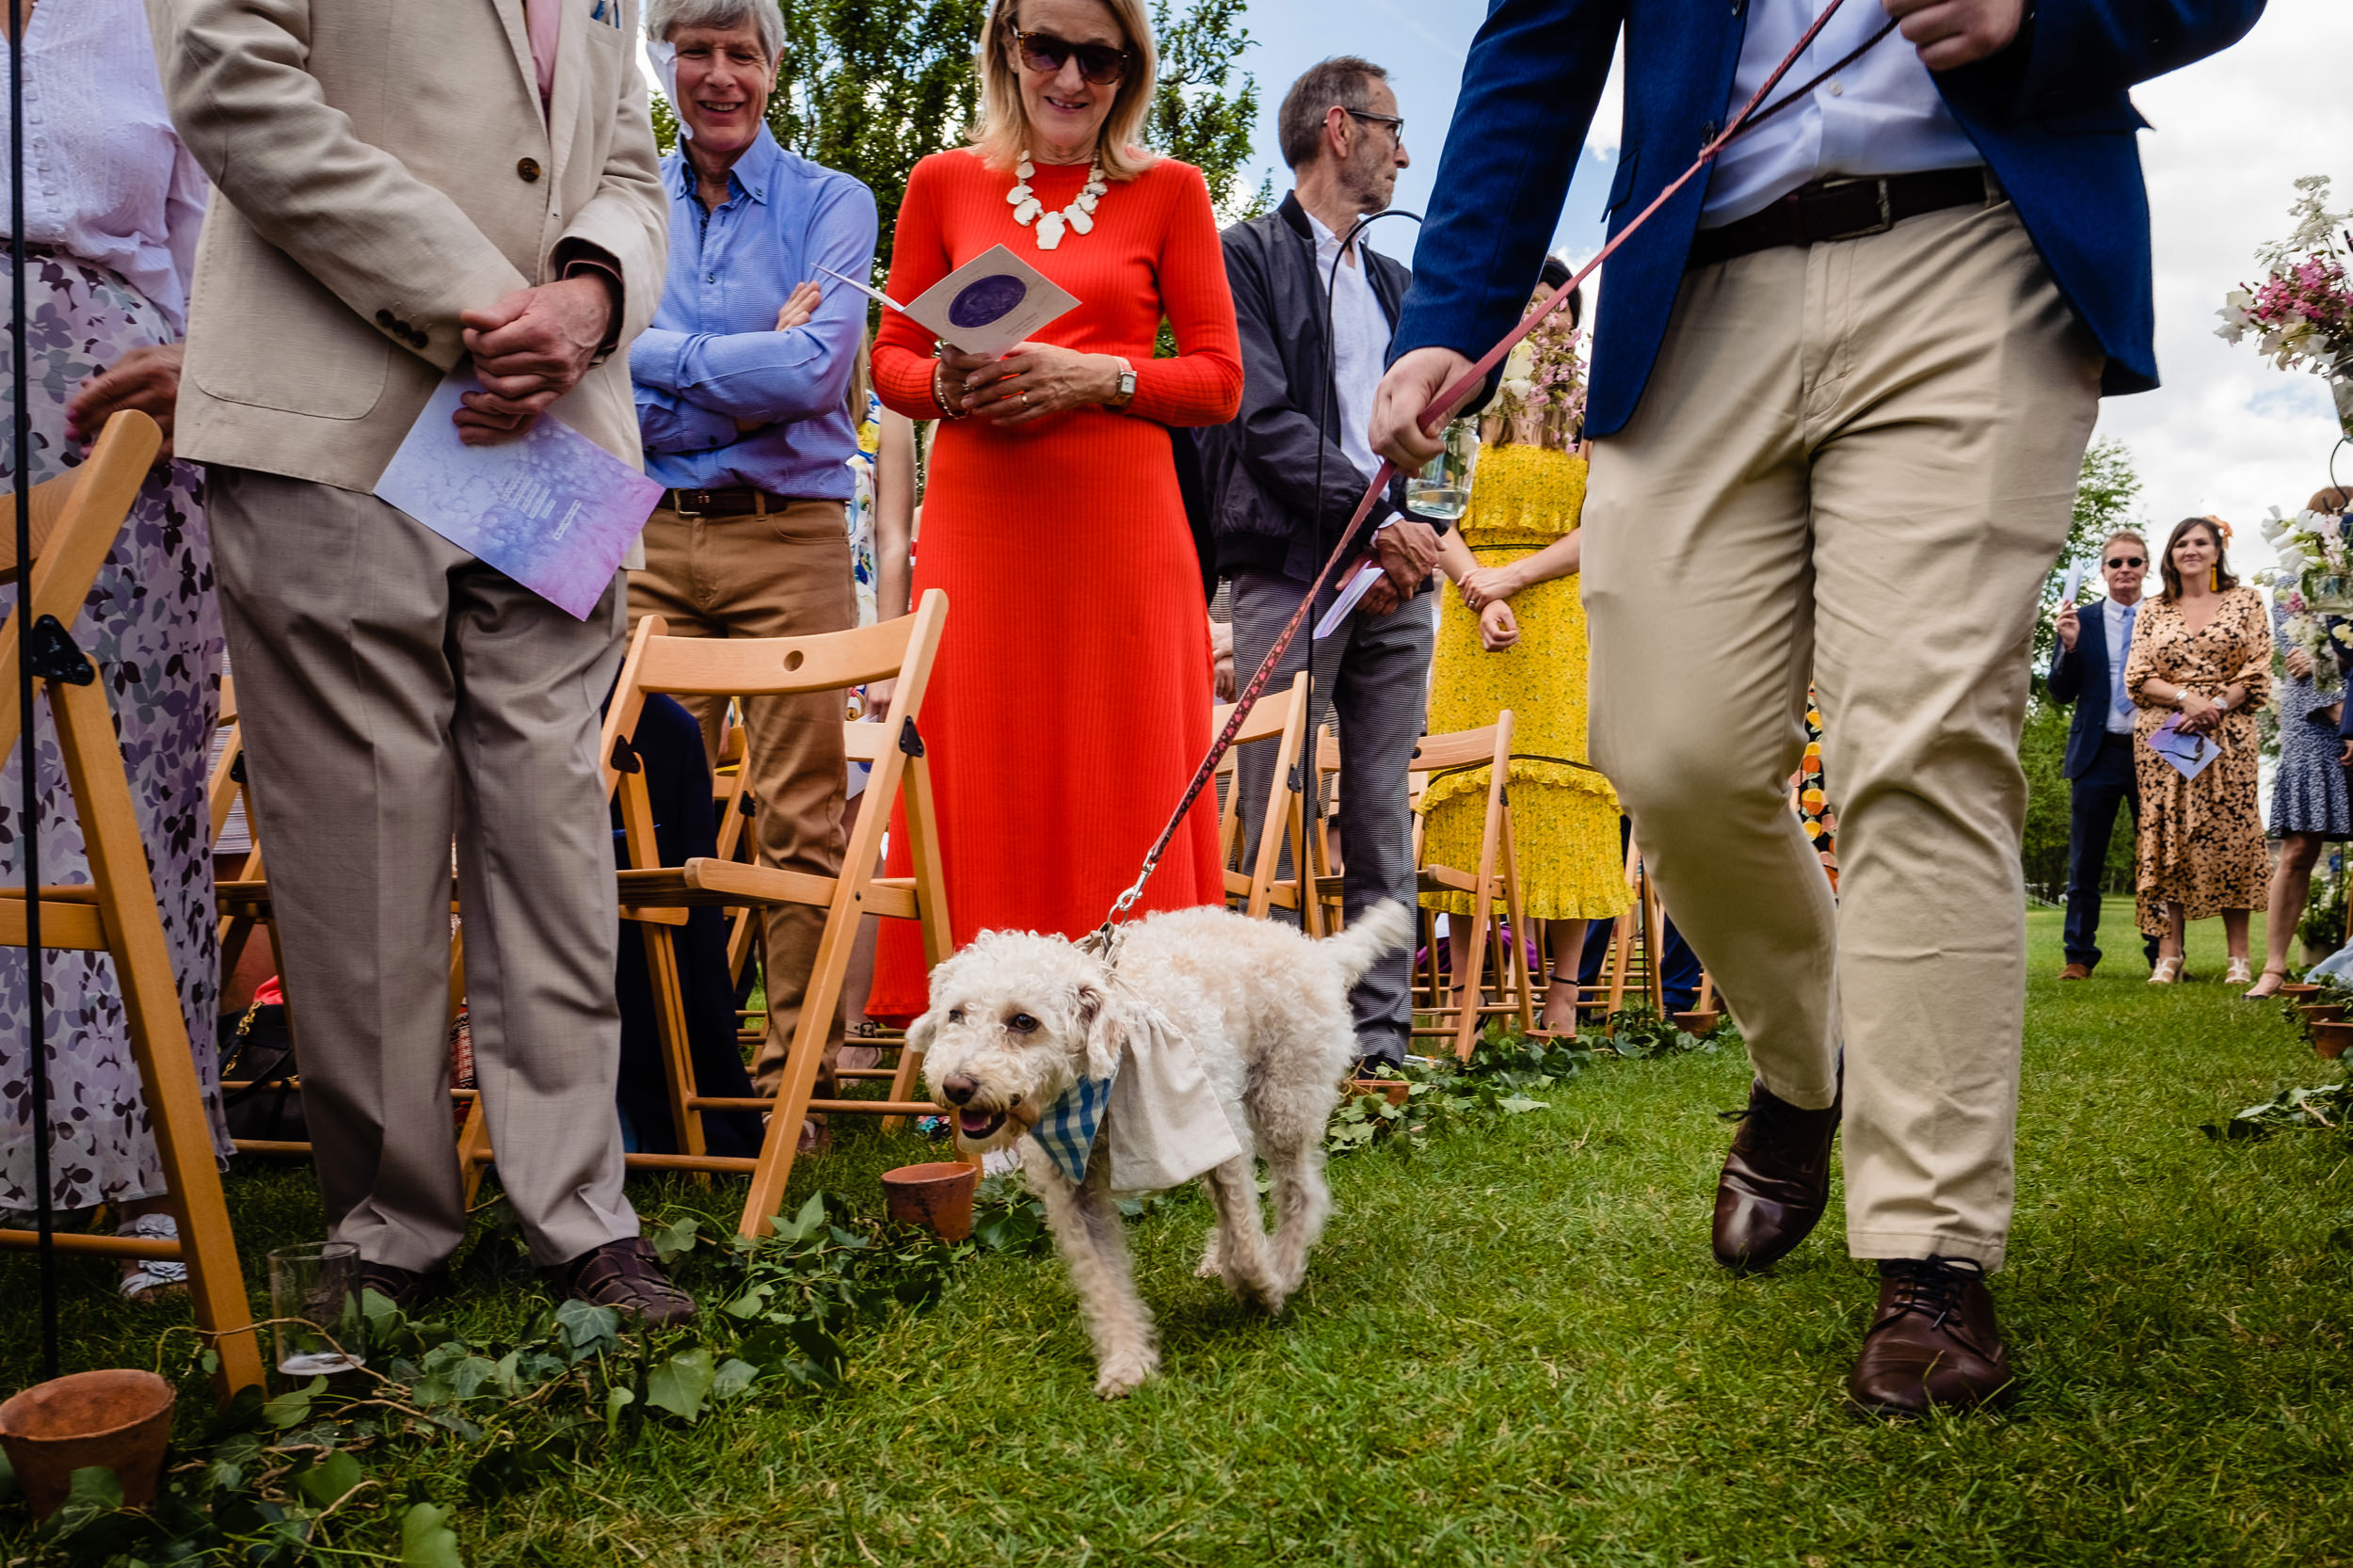 dog acts as ring bearer. maybush wedding co wedding photography by emma and rich.